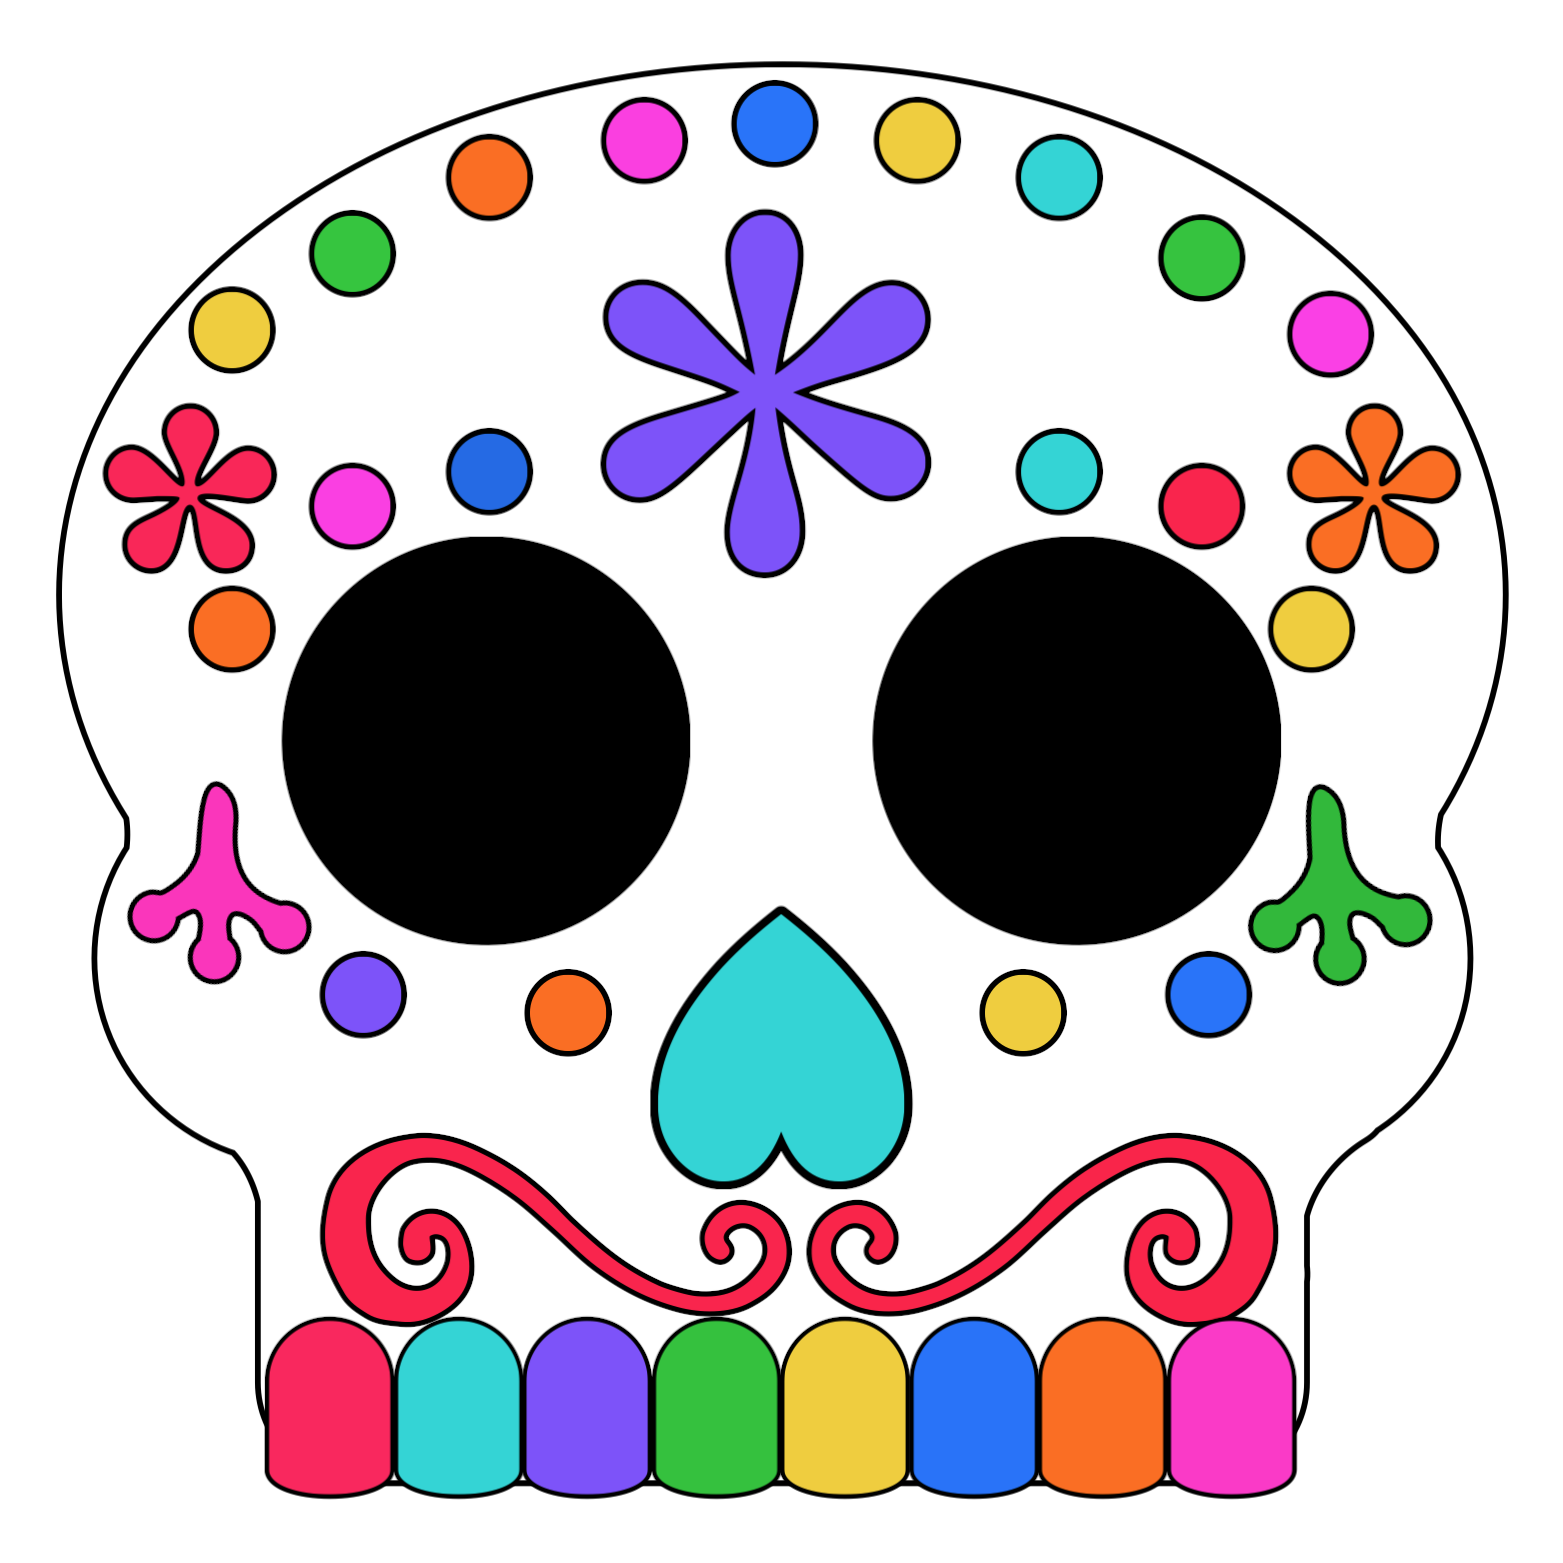 Colored In Day Of The Dead Sugar Skull Masks